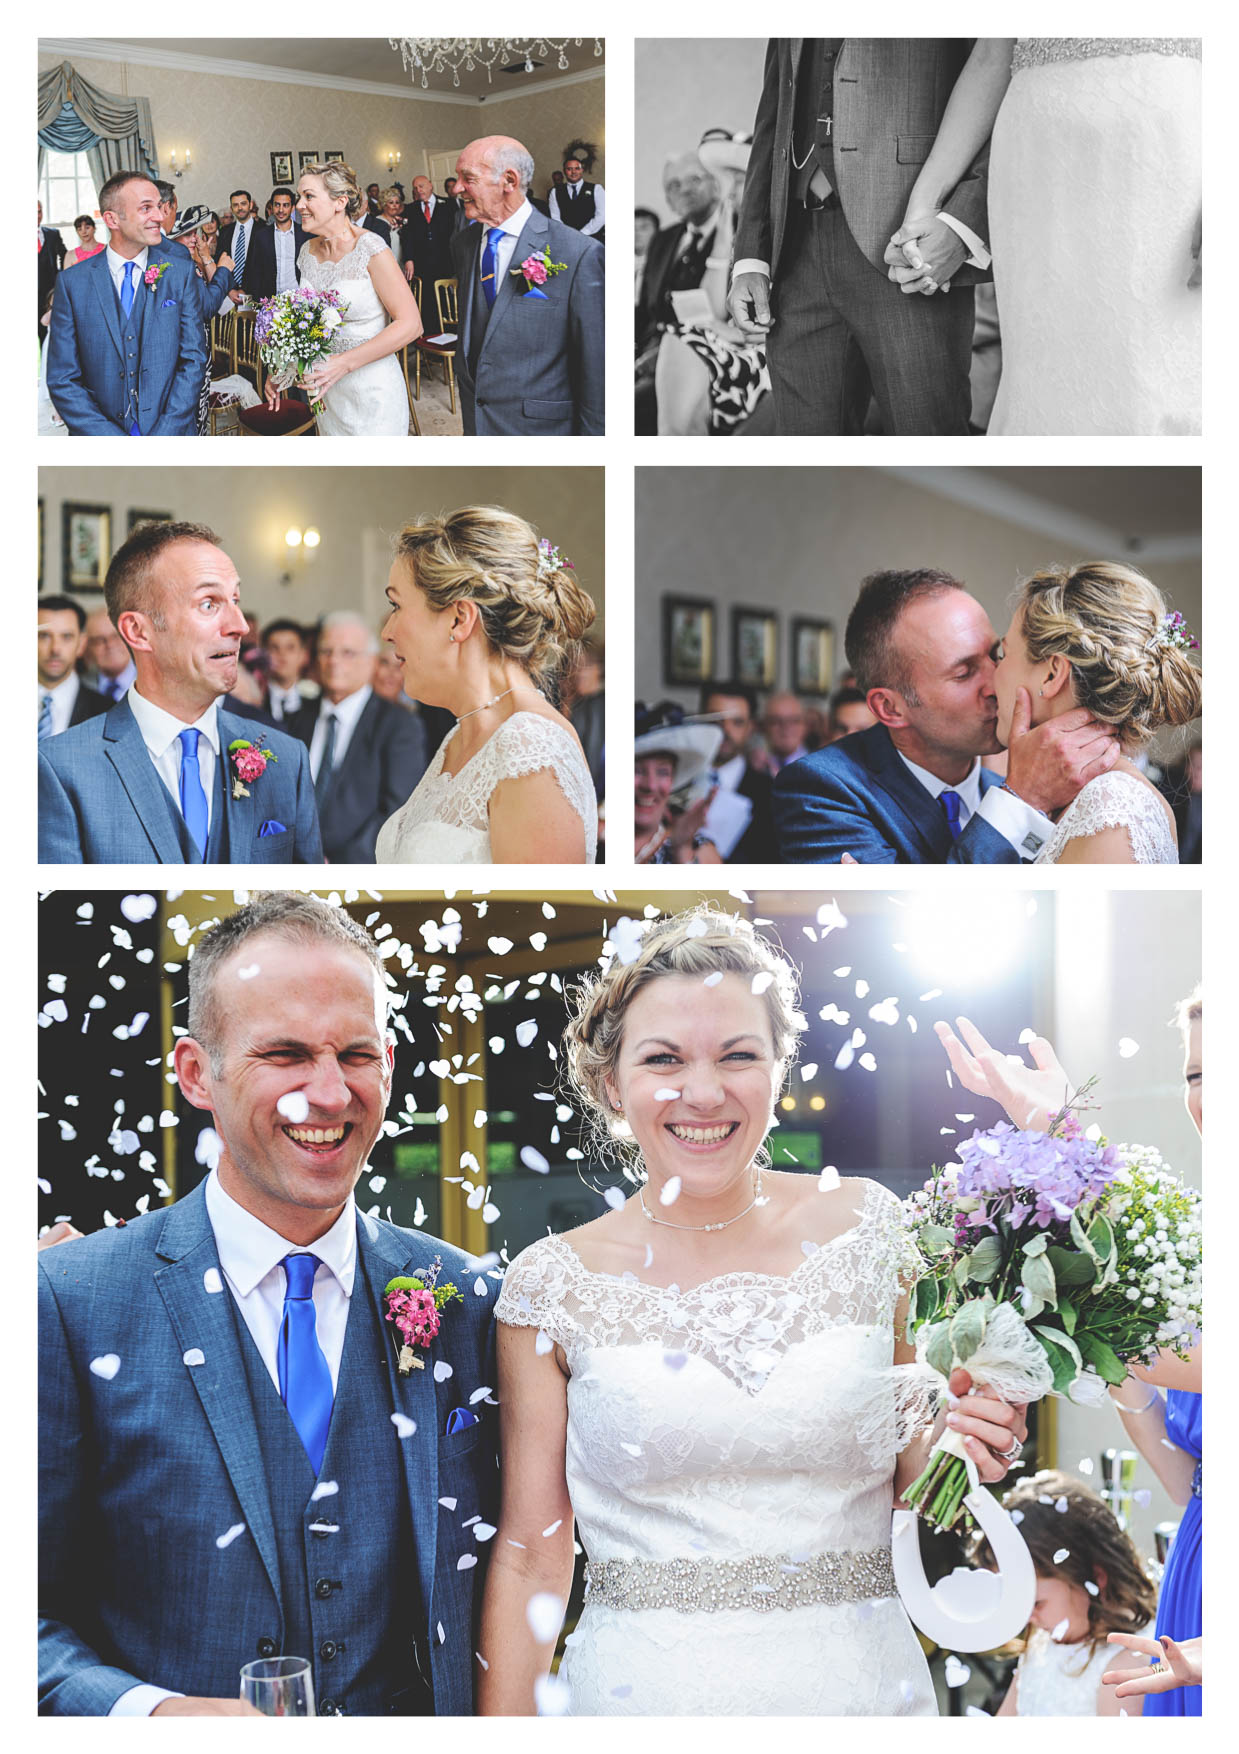 Photos of a wedding service and confetti being thrown outside decourceys manor in cardiff by wedding photographer owen mathias